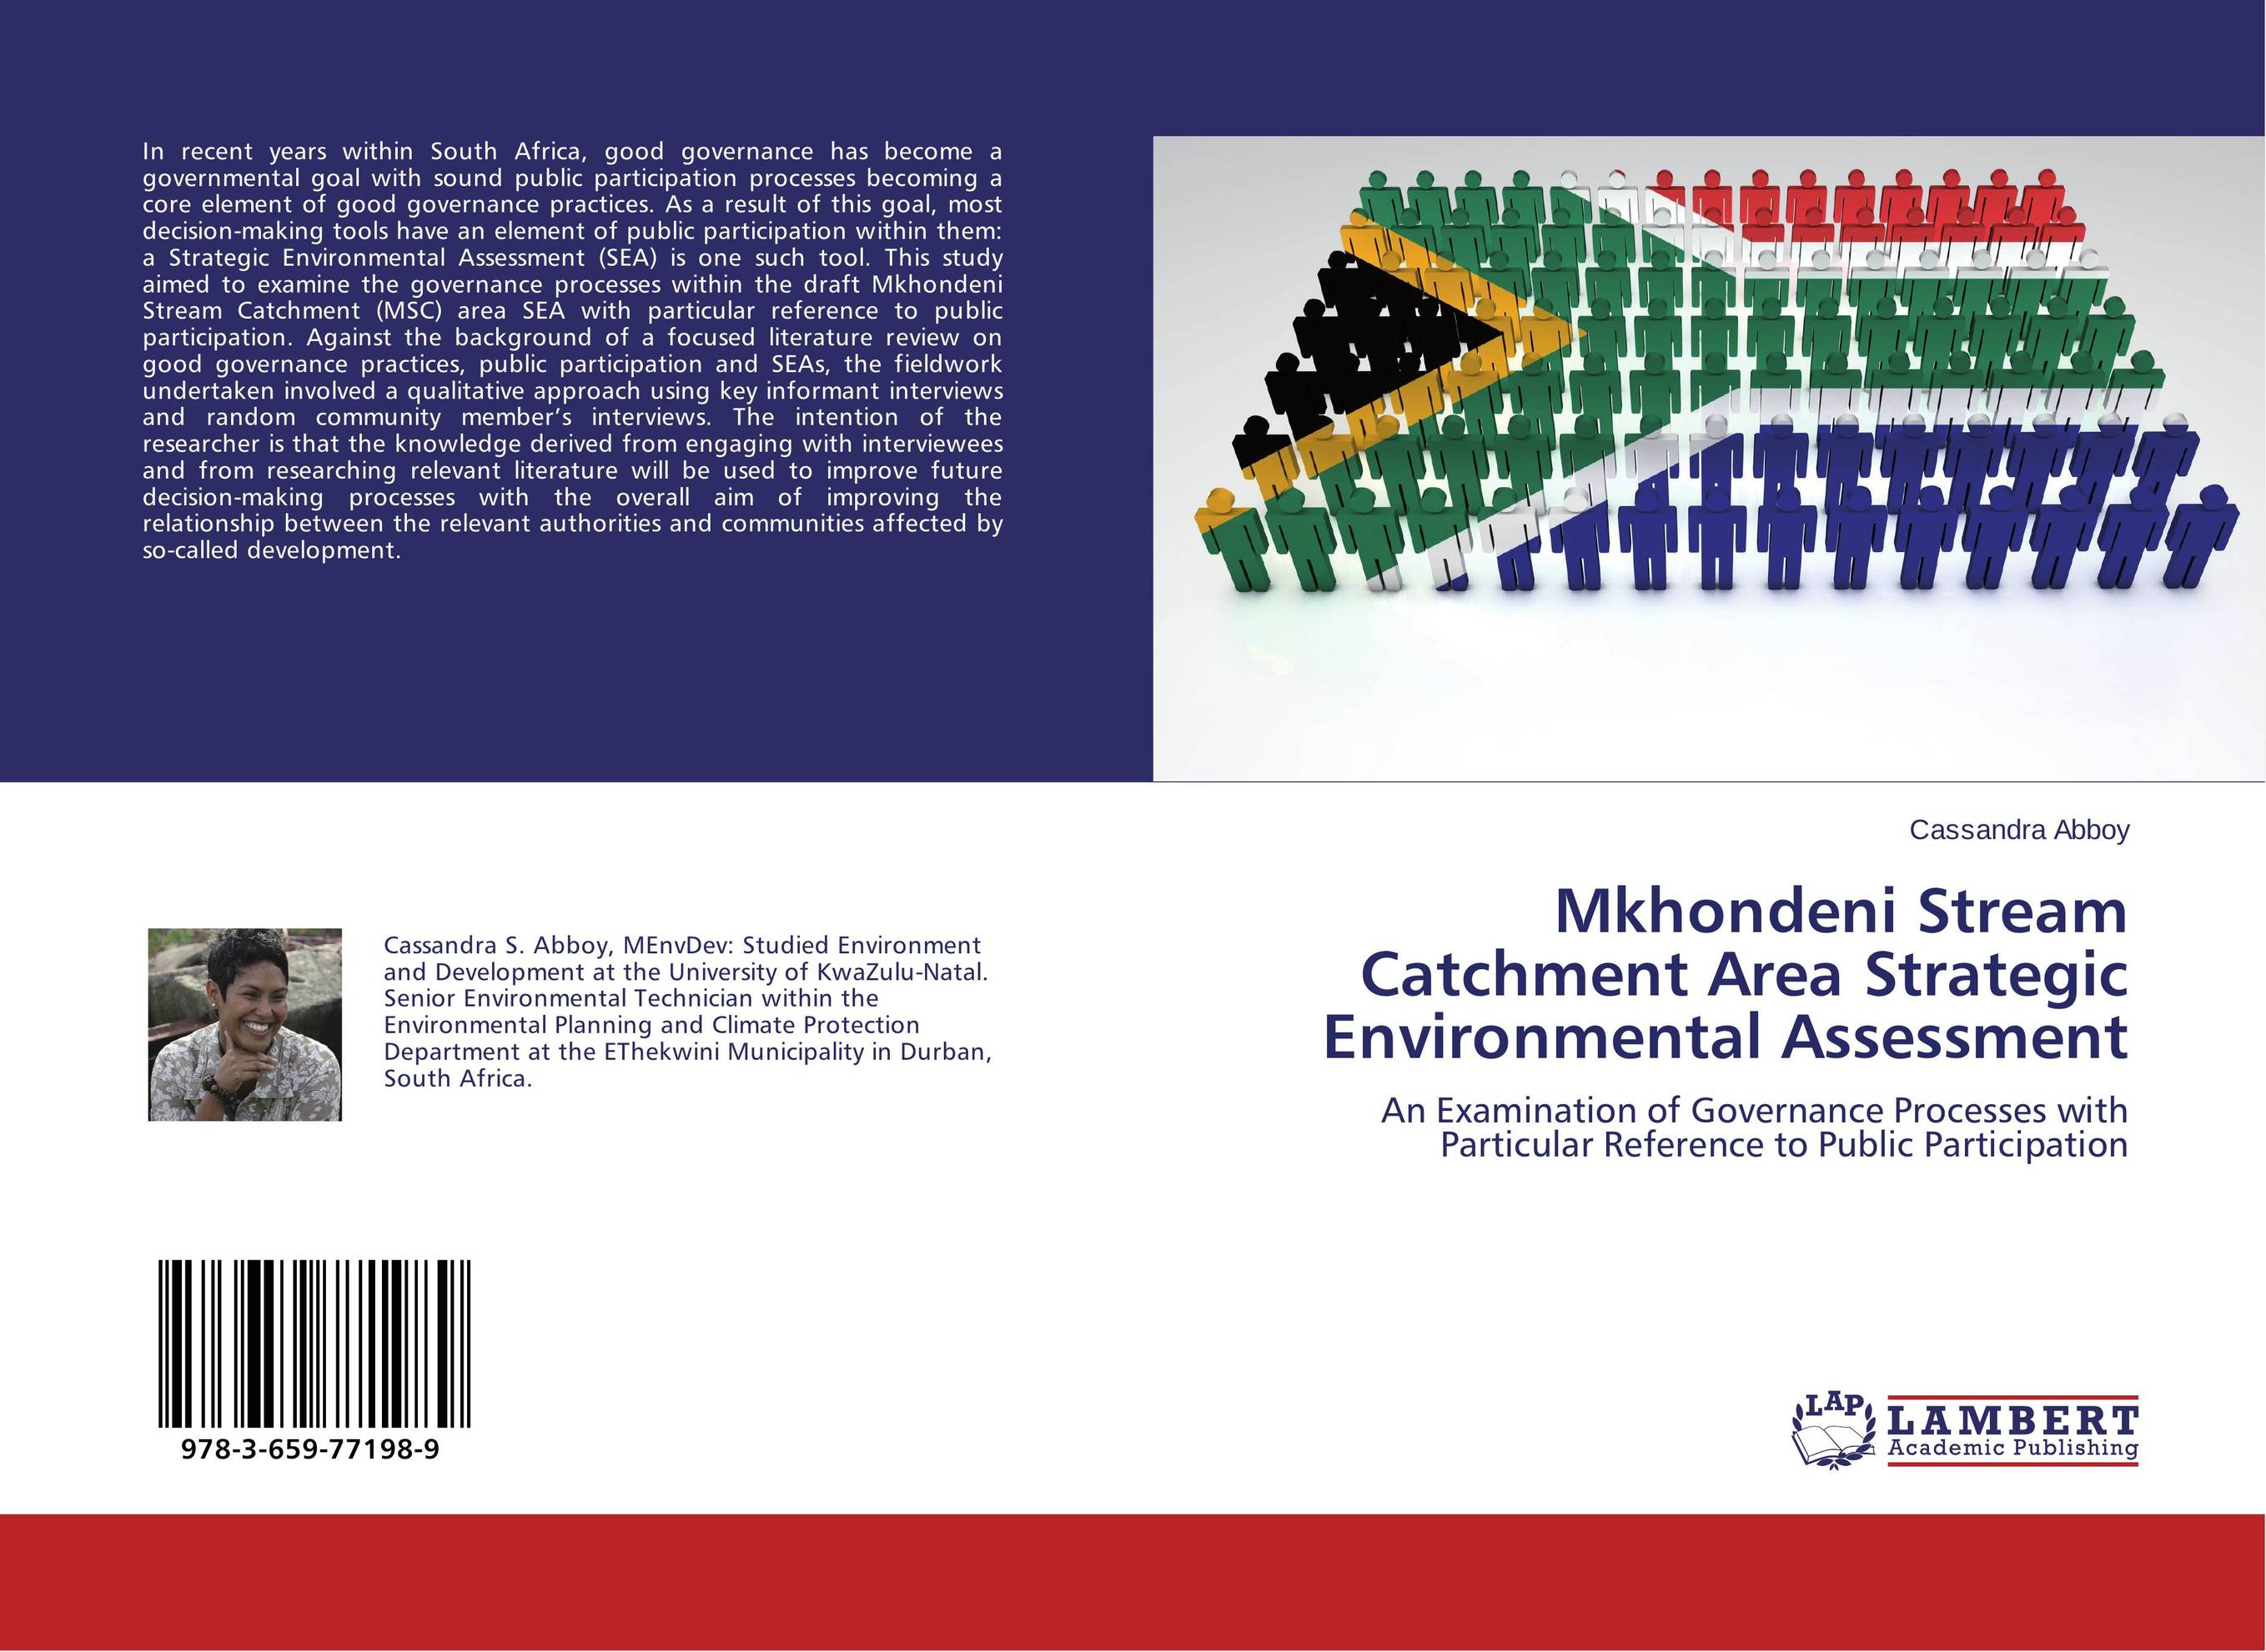 Mkhondeni Stream Catchment Area Strategic Environmental Assessment streams of stream classifications